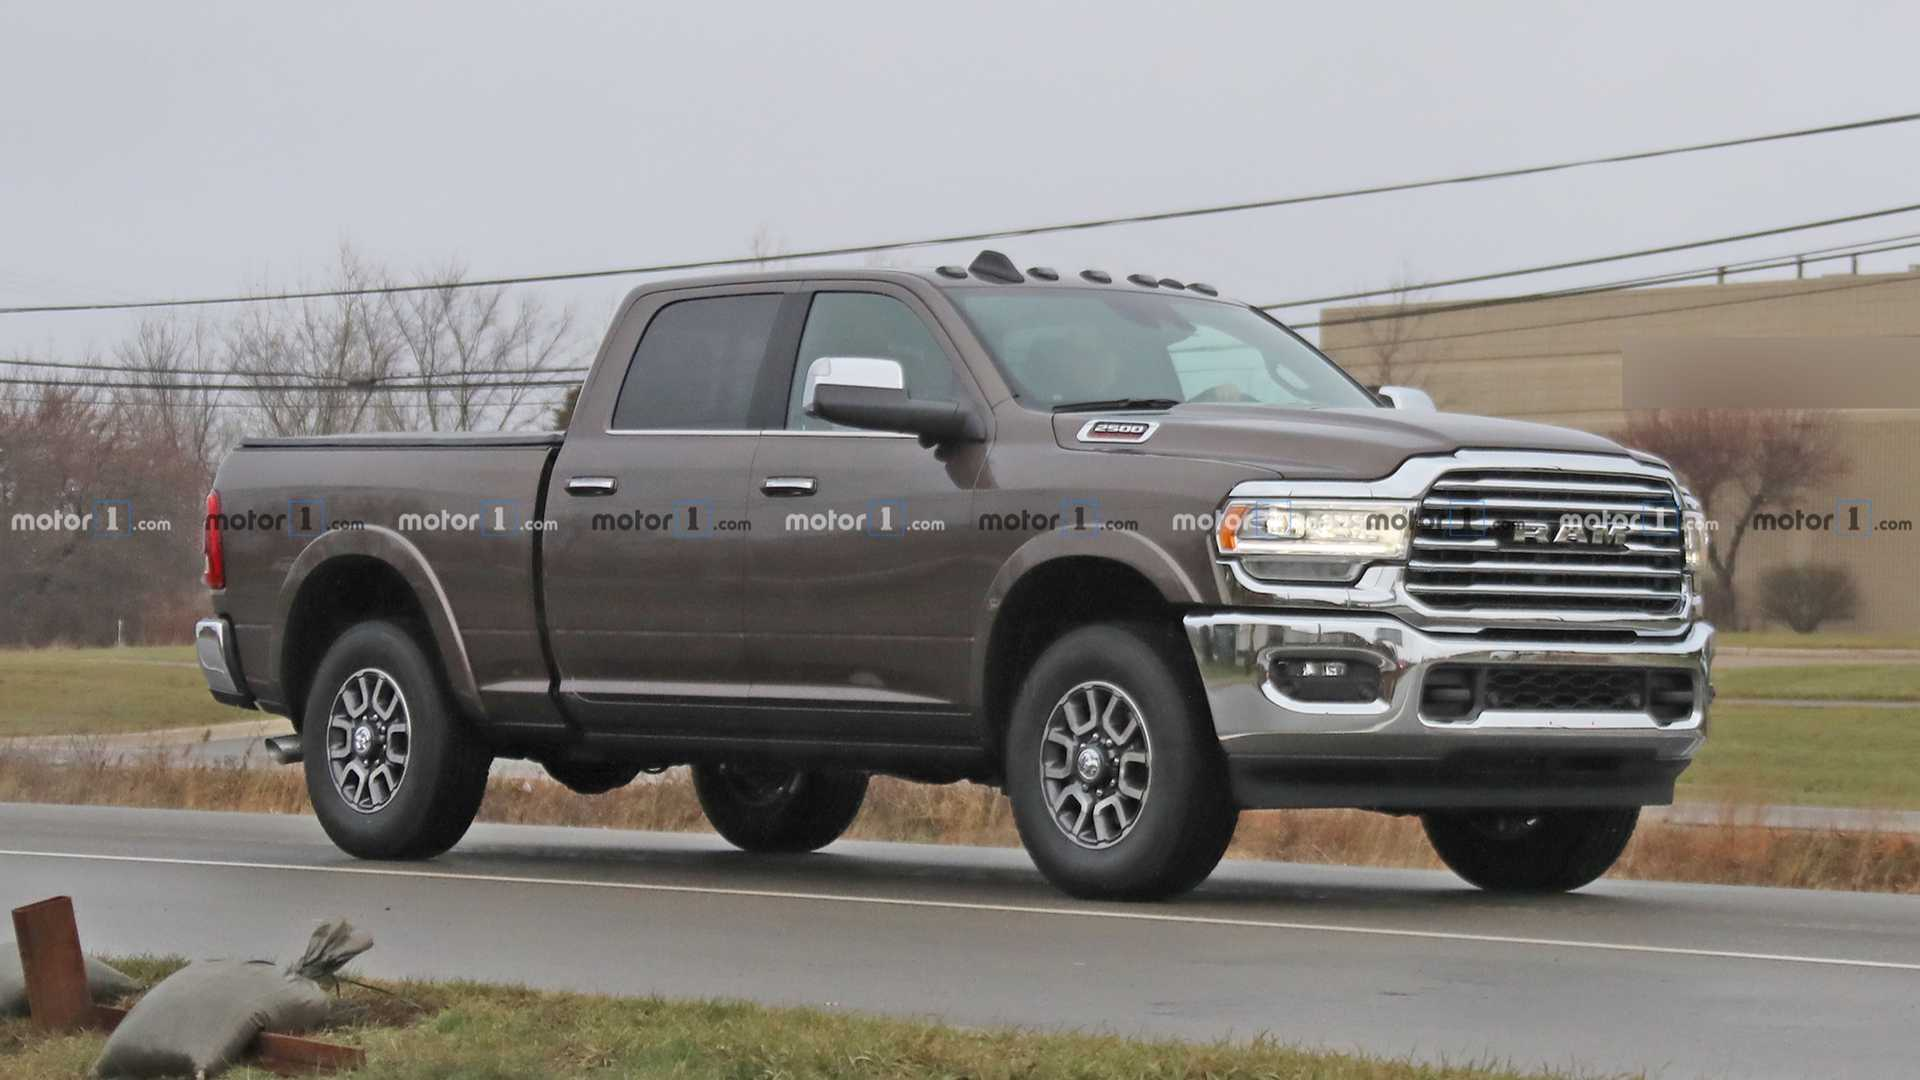 97 New 2020 Dodge Ram 2500 Images